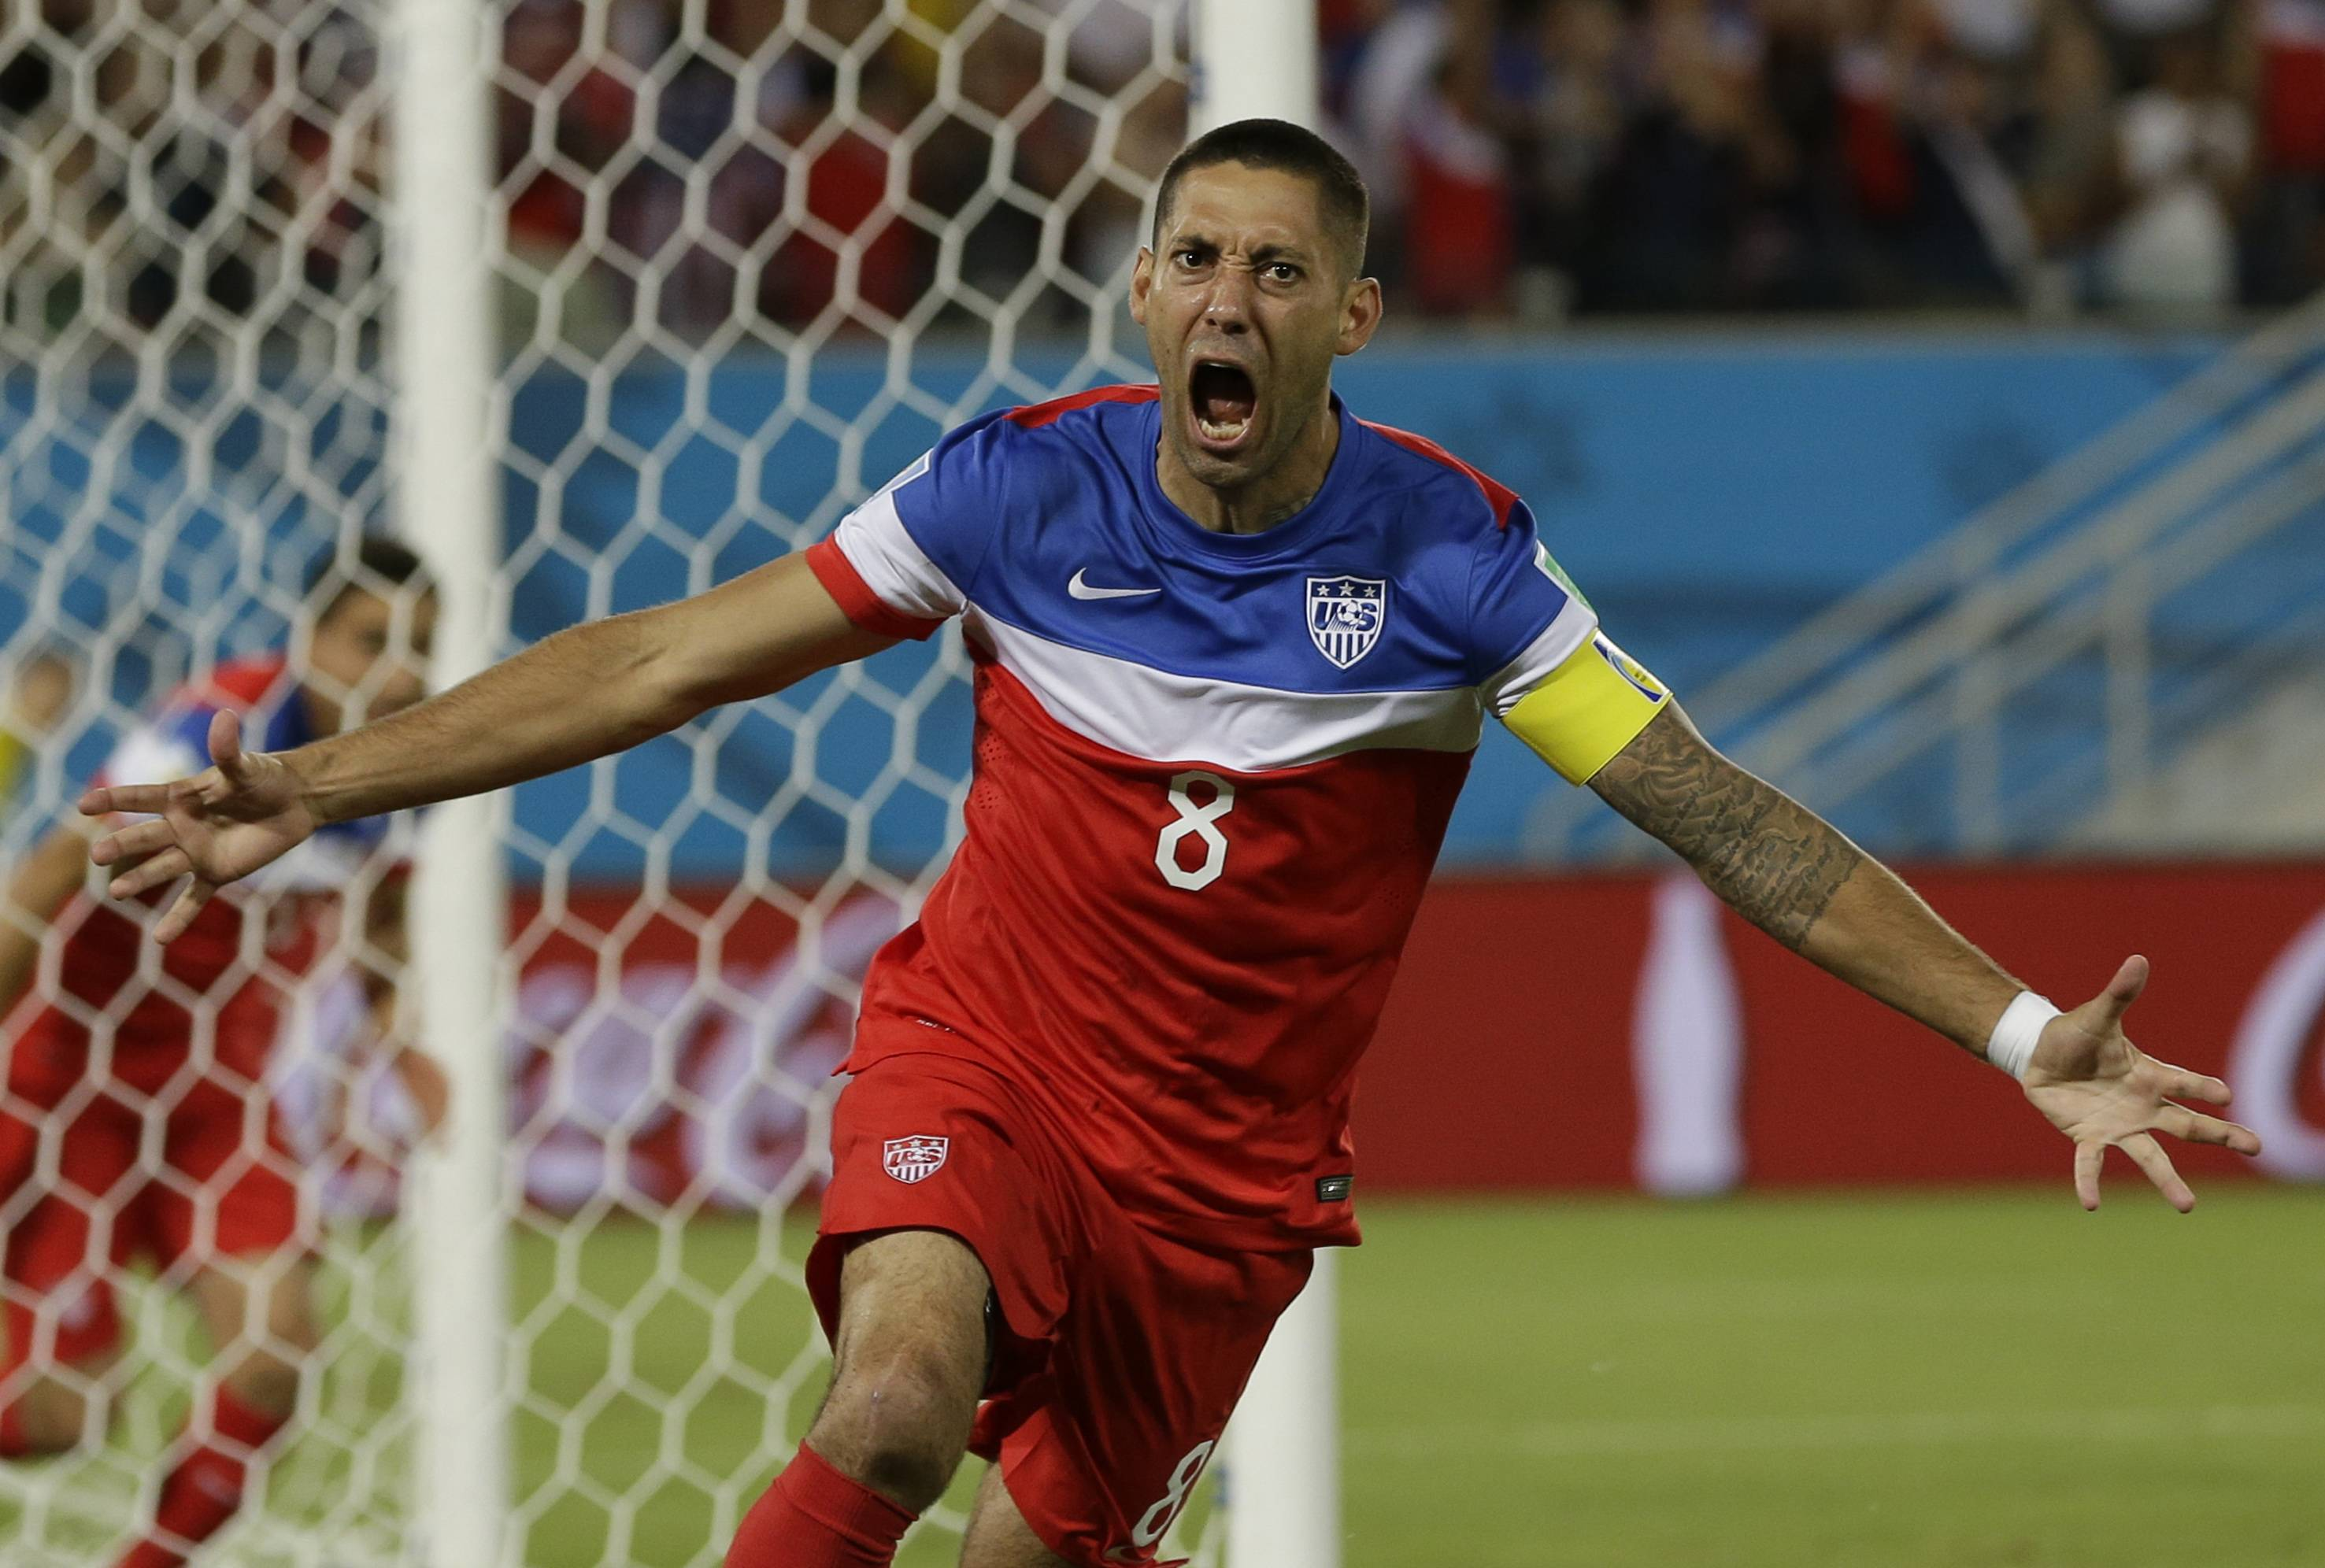 United States' Clint Dempsey celebrates after scoring the opening goal -- just 32 seconds into the match -- during the group G World Cup soccer match between Ghana and the United States at the Arena das Dunas in Natal, Brazil, Monday.